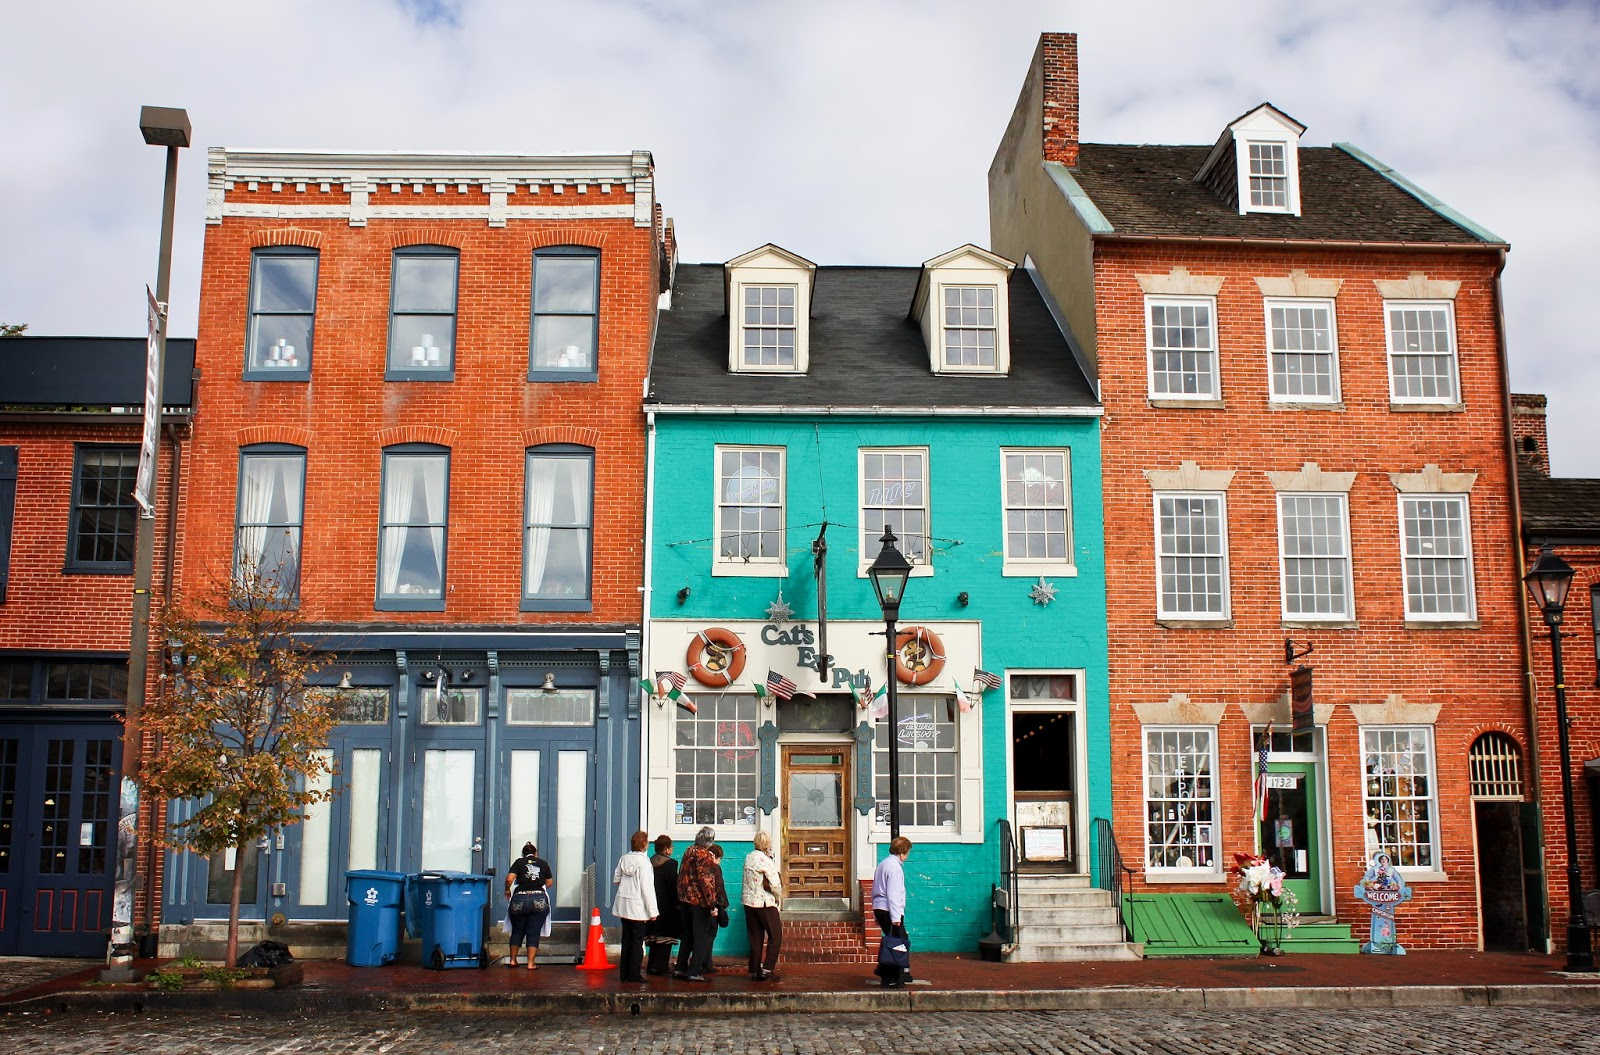 Historic buildings in the Fells Point neighborhood, Baltimore, MD